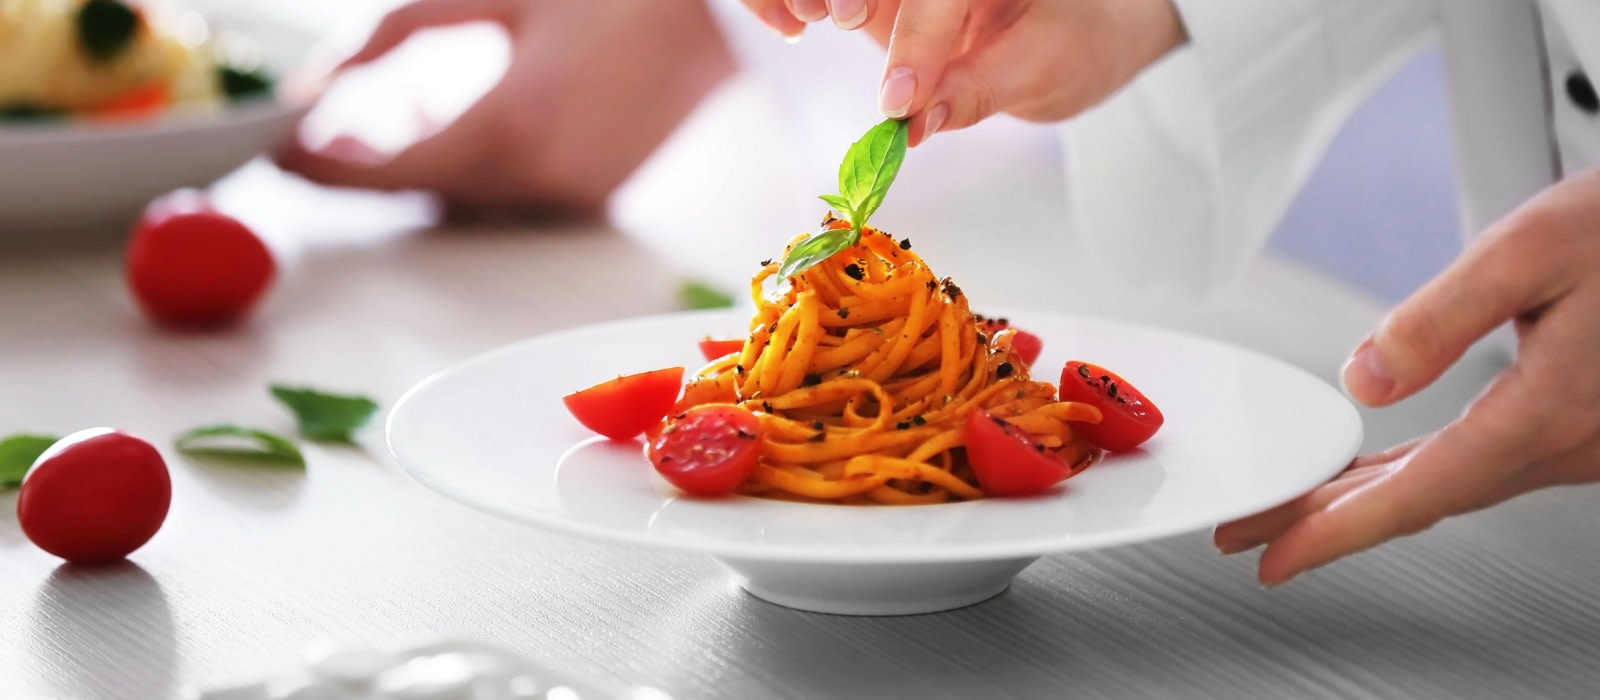 cuisine in Italy - try some pasta!